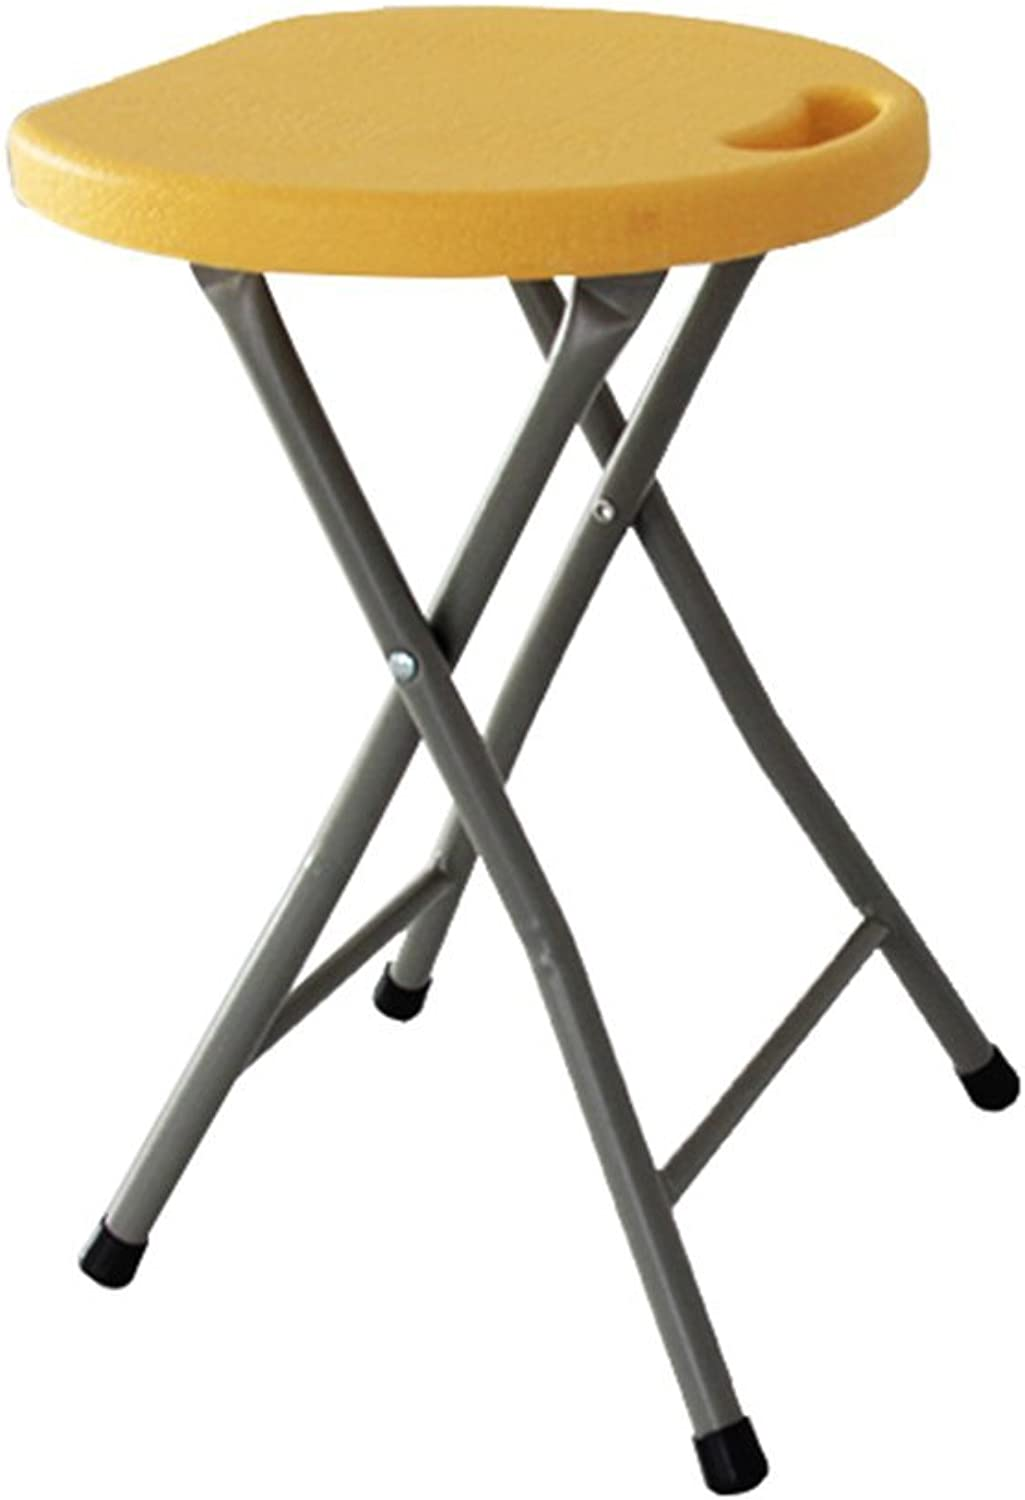 Chair  folding stool, household dining table and chair, bar stool metal portable barbecue stool super load bearing plastic stool (color   Yellow)